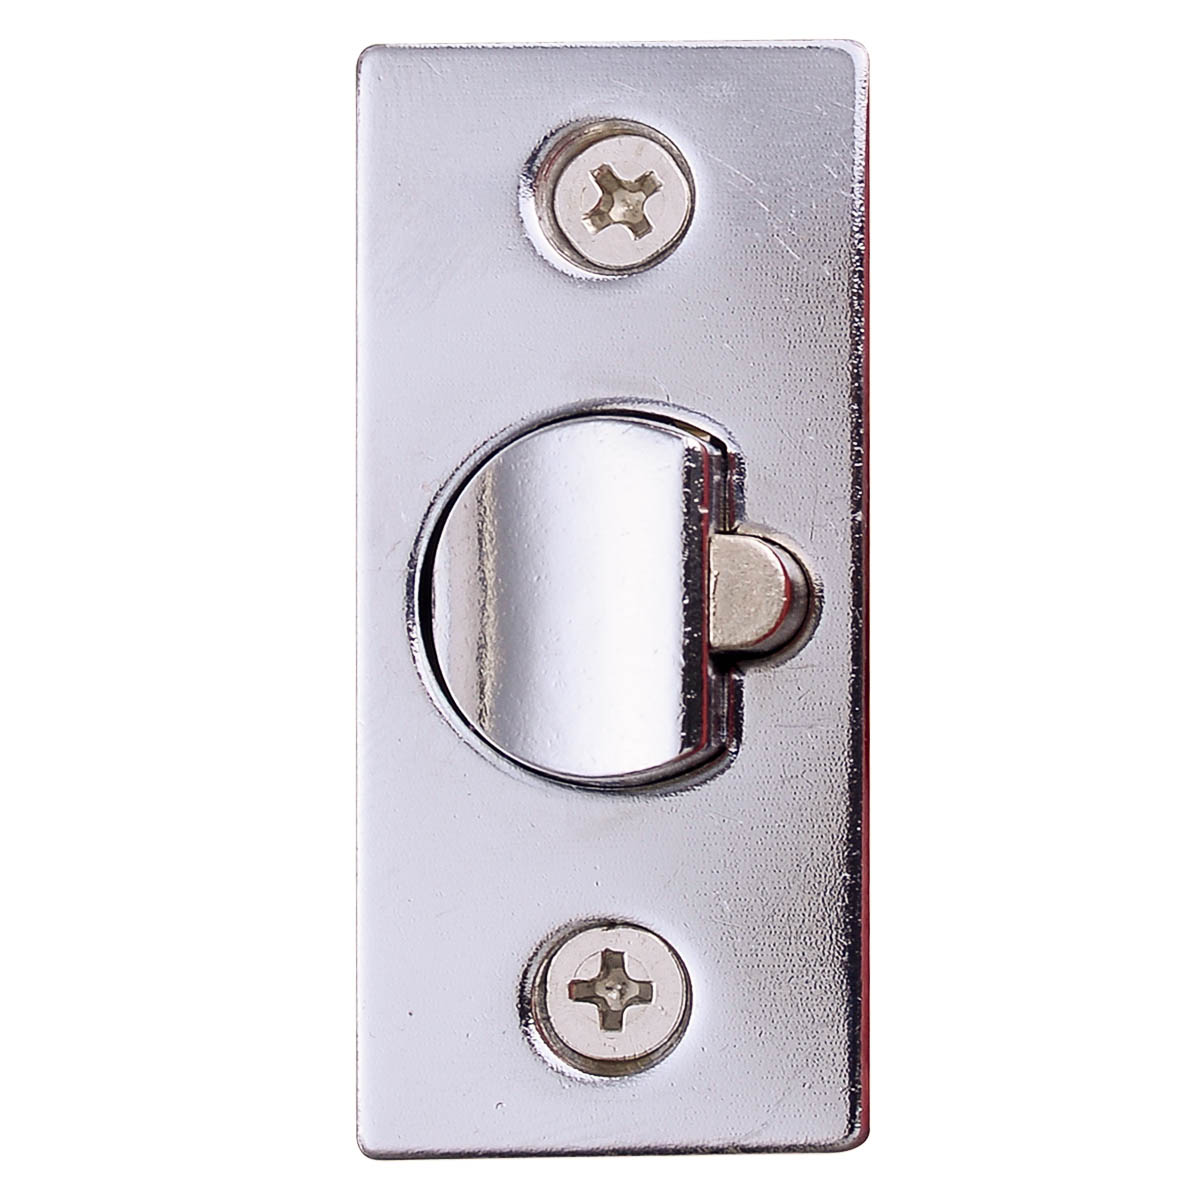 keypad door knob photo - 6